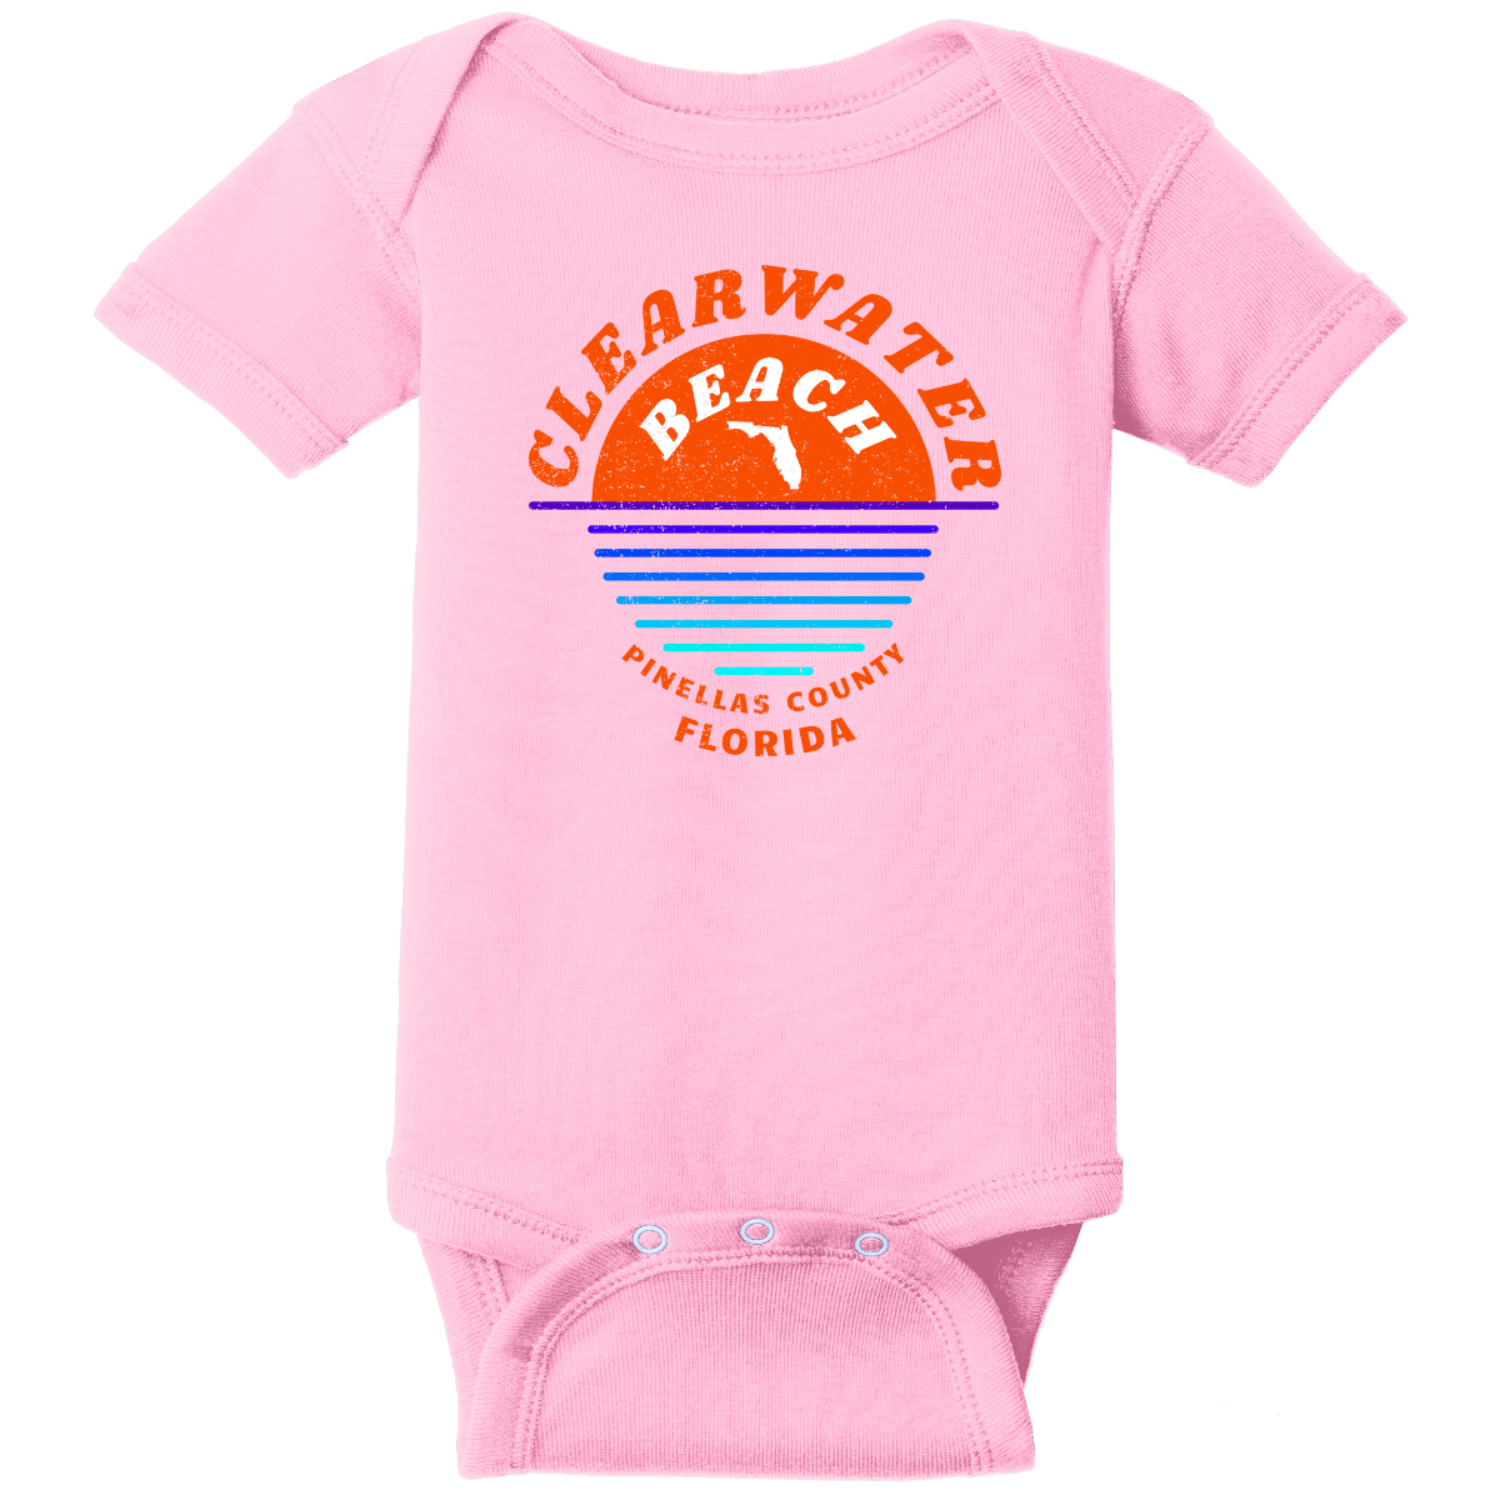 Clearwater Beach Sunset In Ocean Vintage Baby Bodysuit Pink Rabbit Skins Infant Short Sleeve Infant Rib Bodysuit RS4400